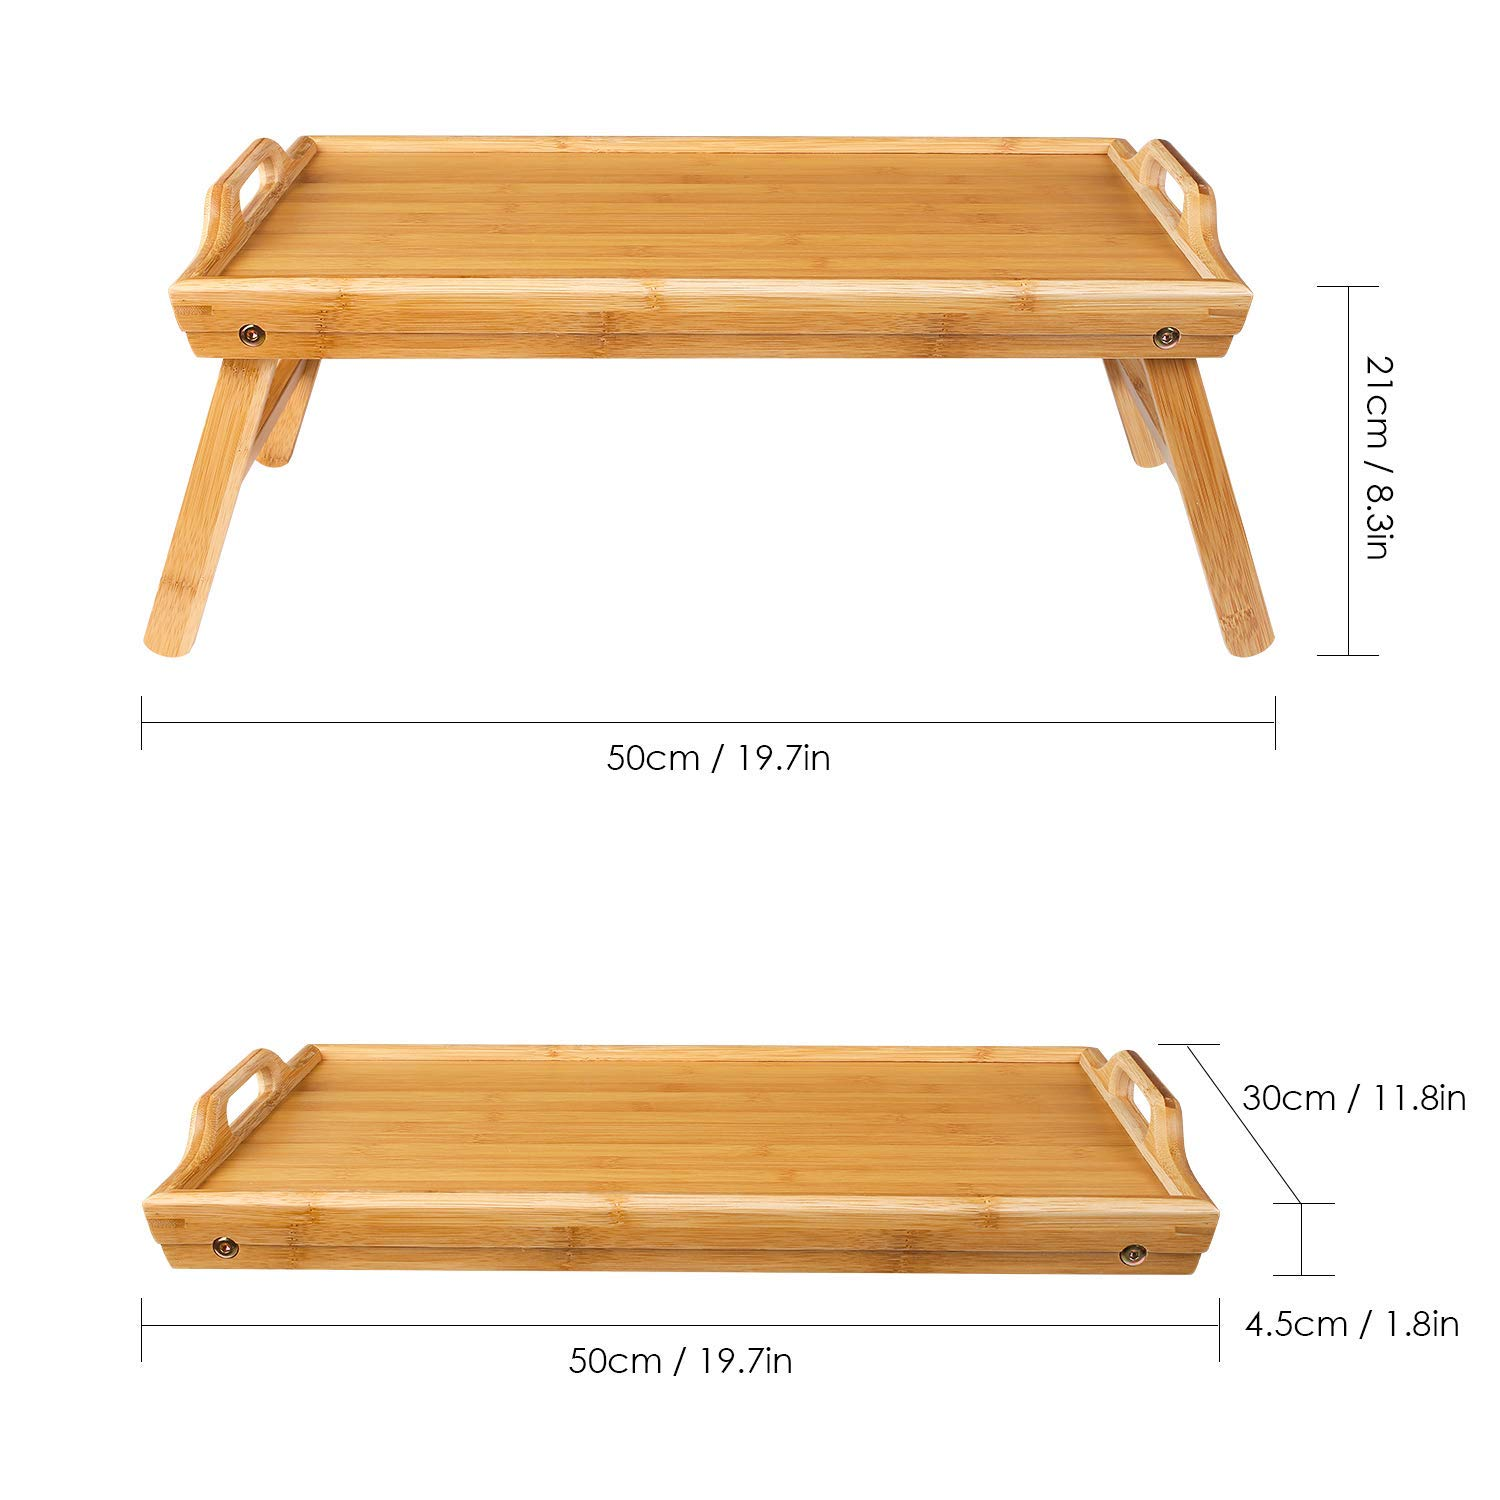 Natural Bamboo Serving Tray Set Bed Tray Breakfast Table With Legs Bamboo Tray Serving 7